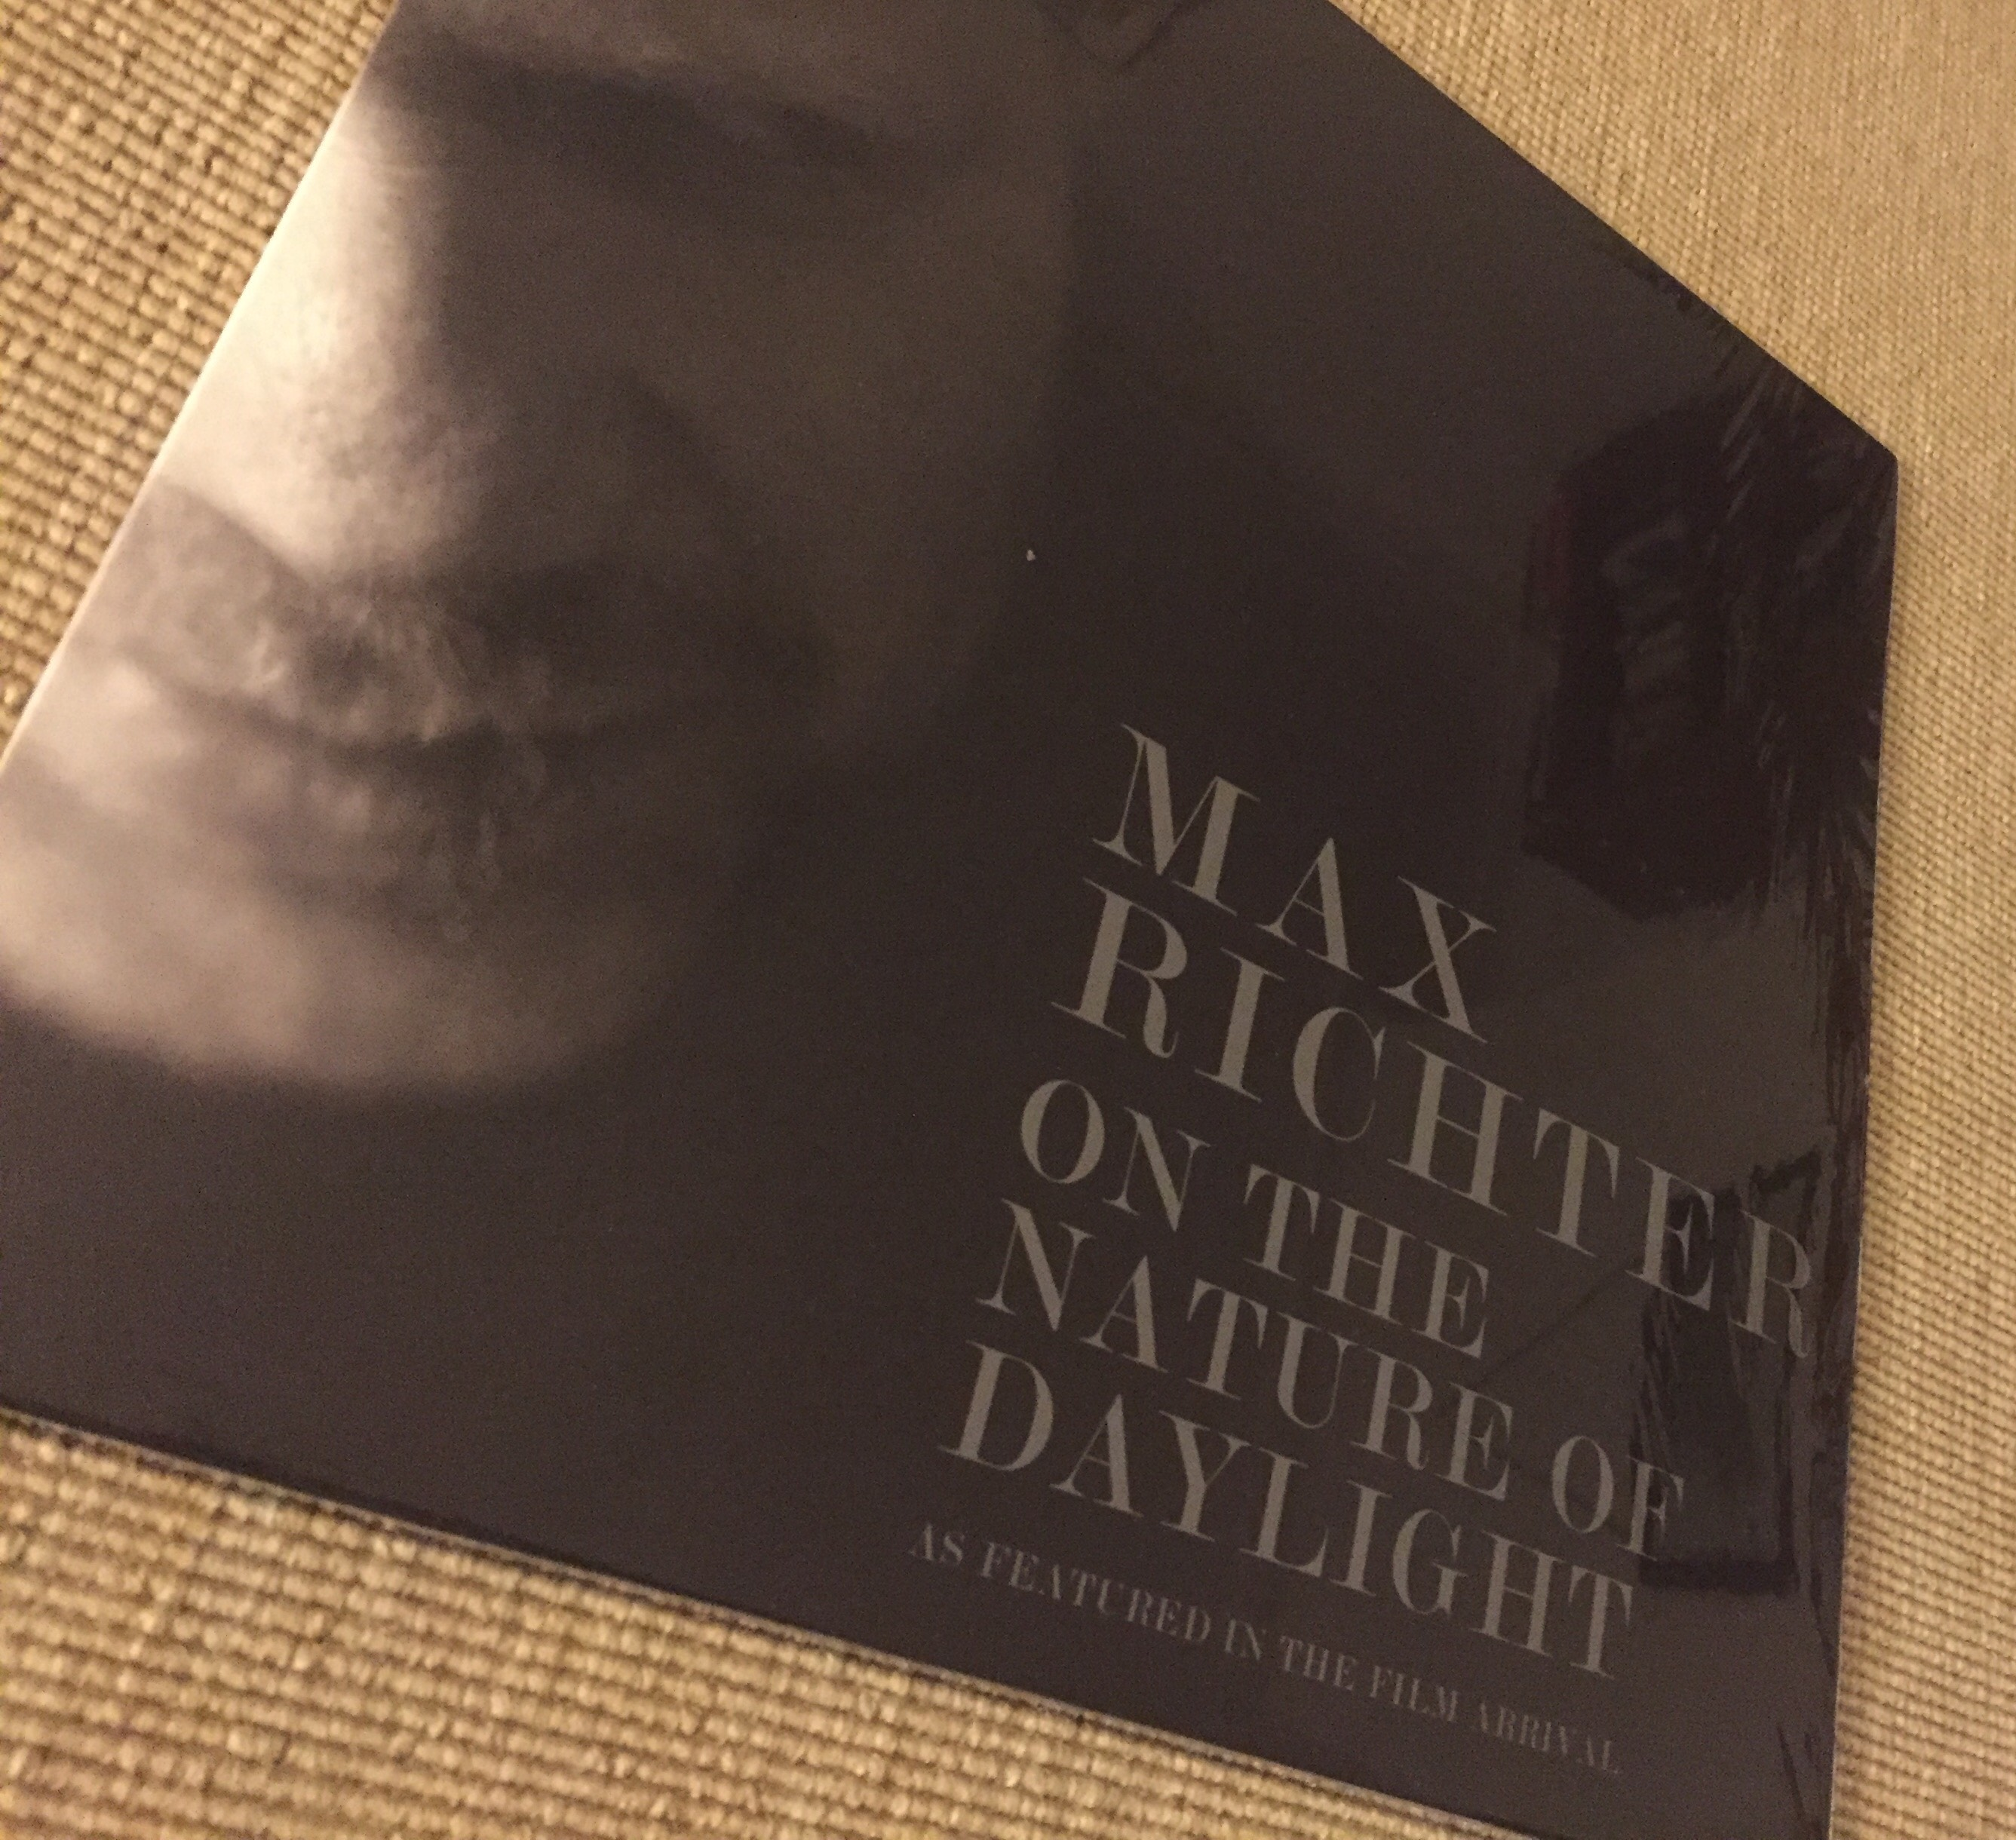 Studio Richter, Max Richter, On The Nature Of Daylight, Review, Test Pressing